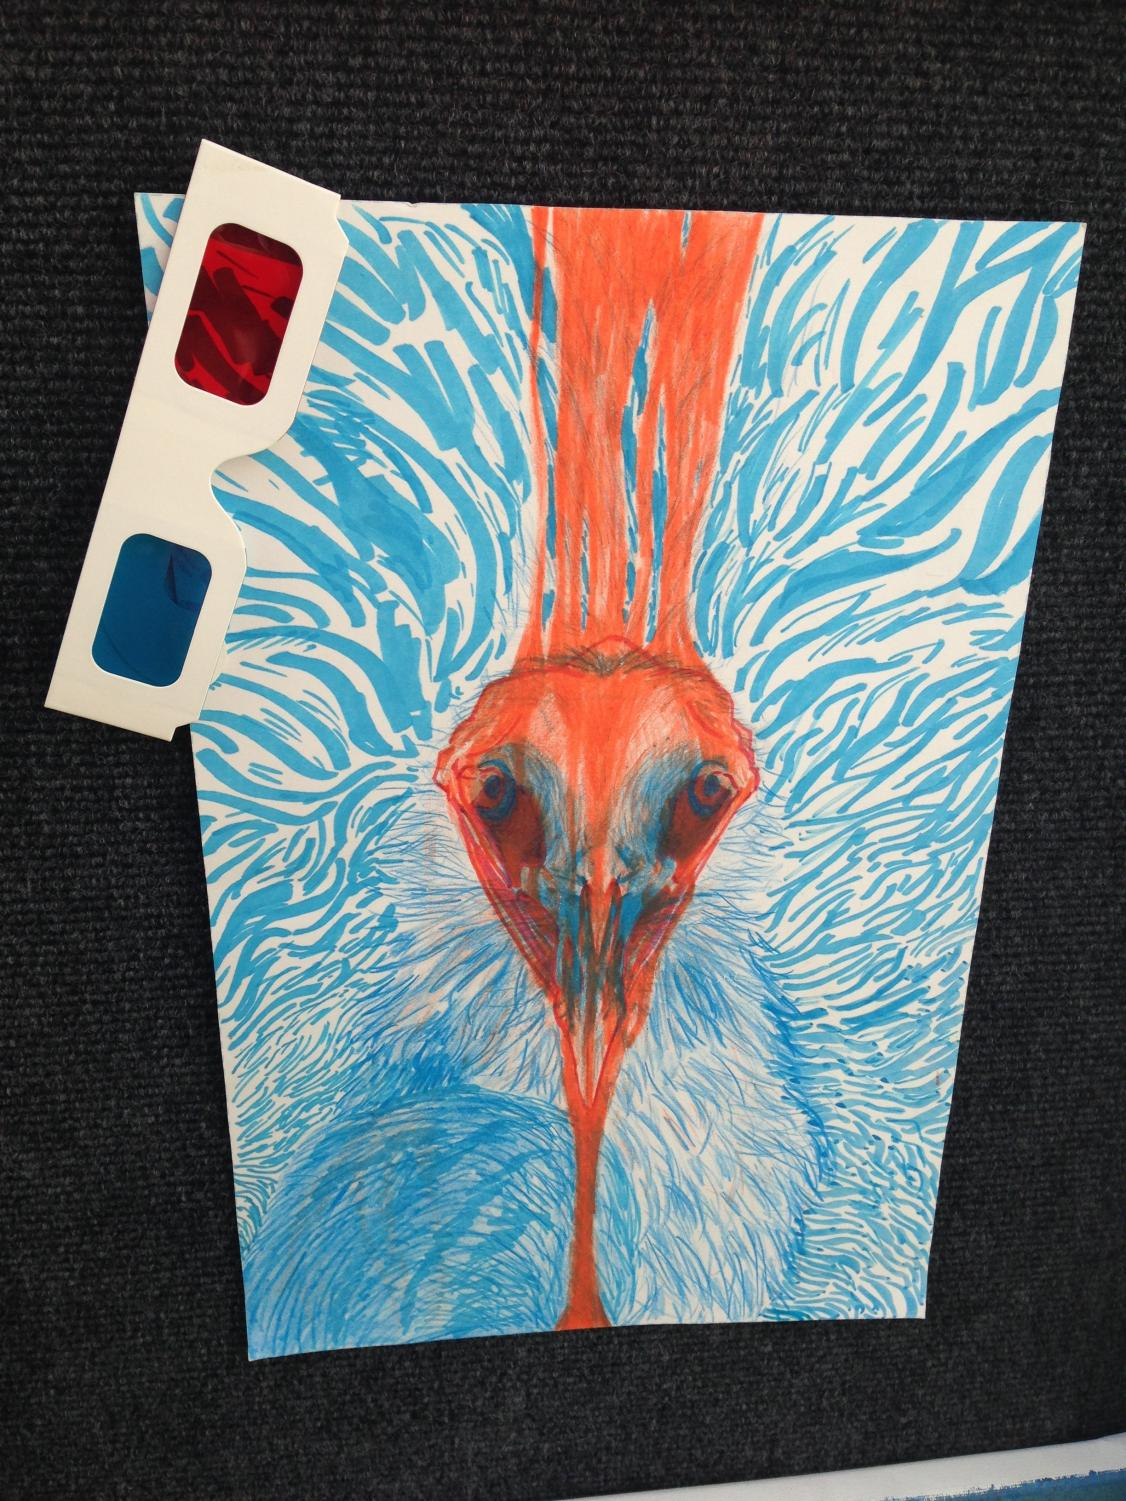 This+piece+utilizes+the+3D+glasses+hanging+on+the+corner+to+separate+red+from+blue.++In+one+eye%2C+you+can+see+the+face+of+an+ostrich%2C+but+in+the+other+you+can+see+the+skull+of+one.